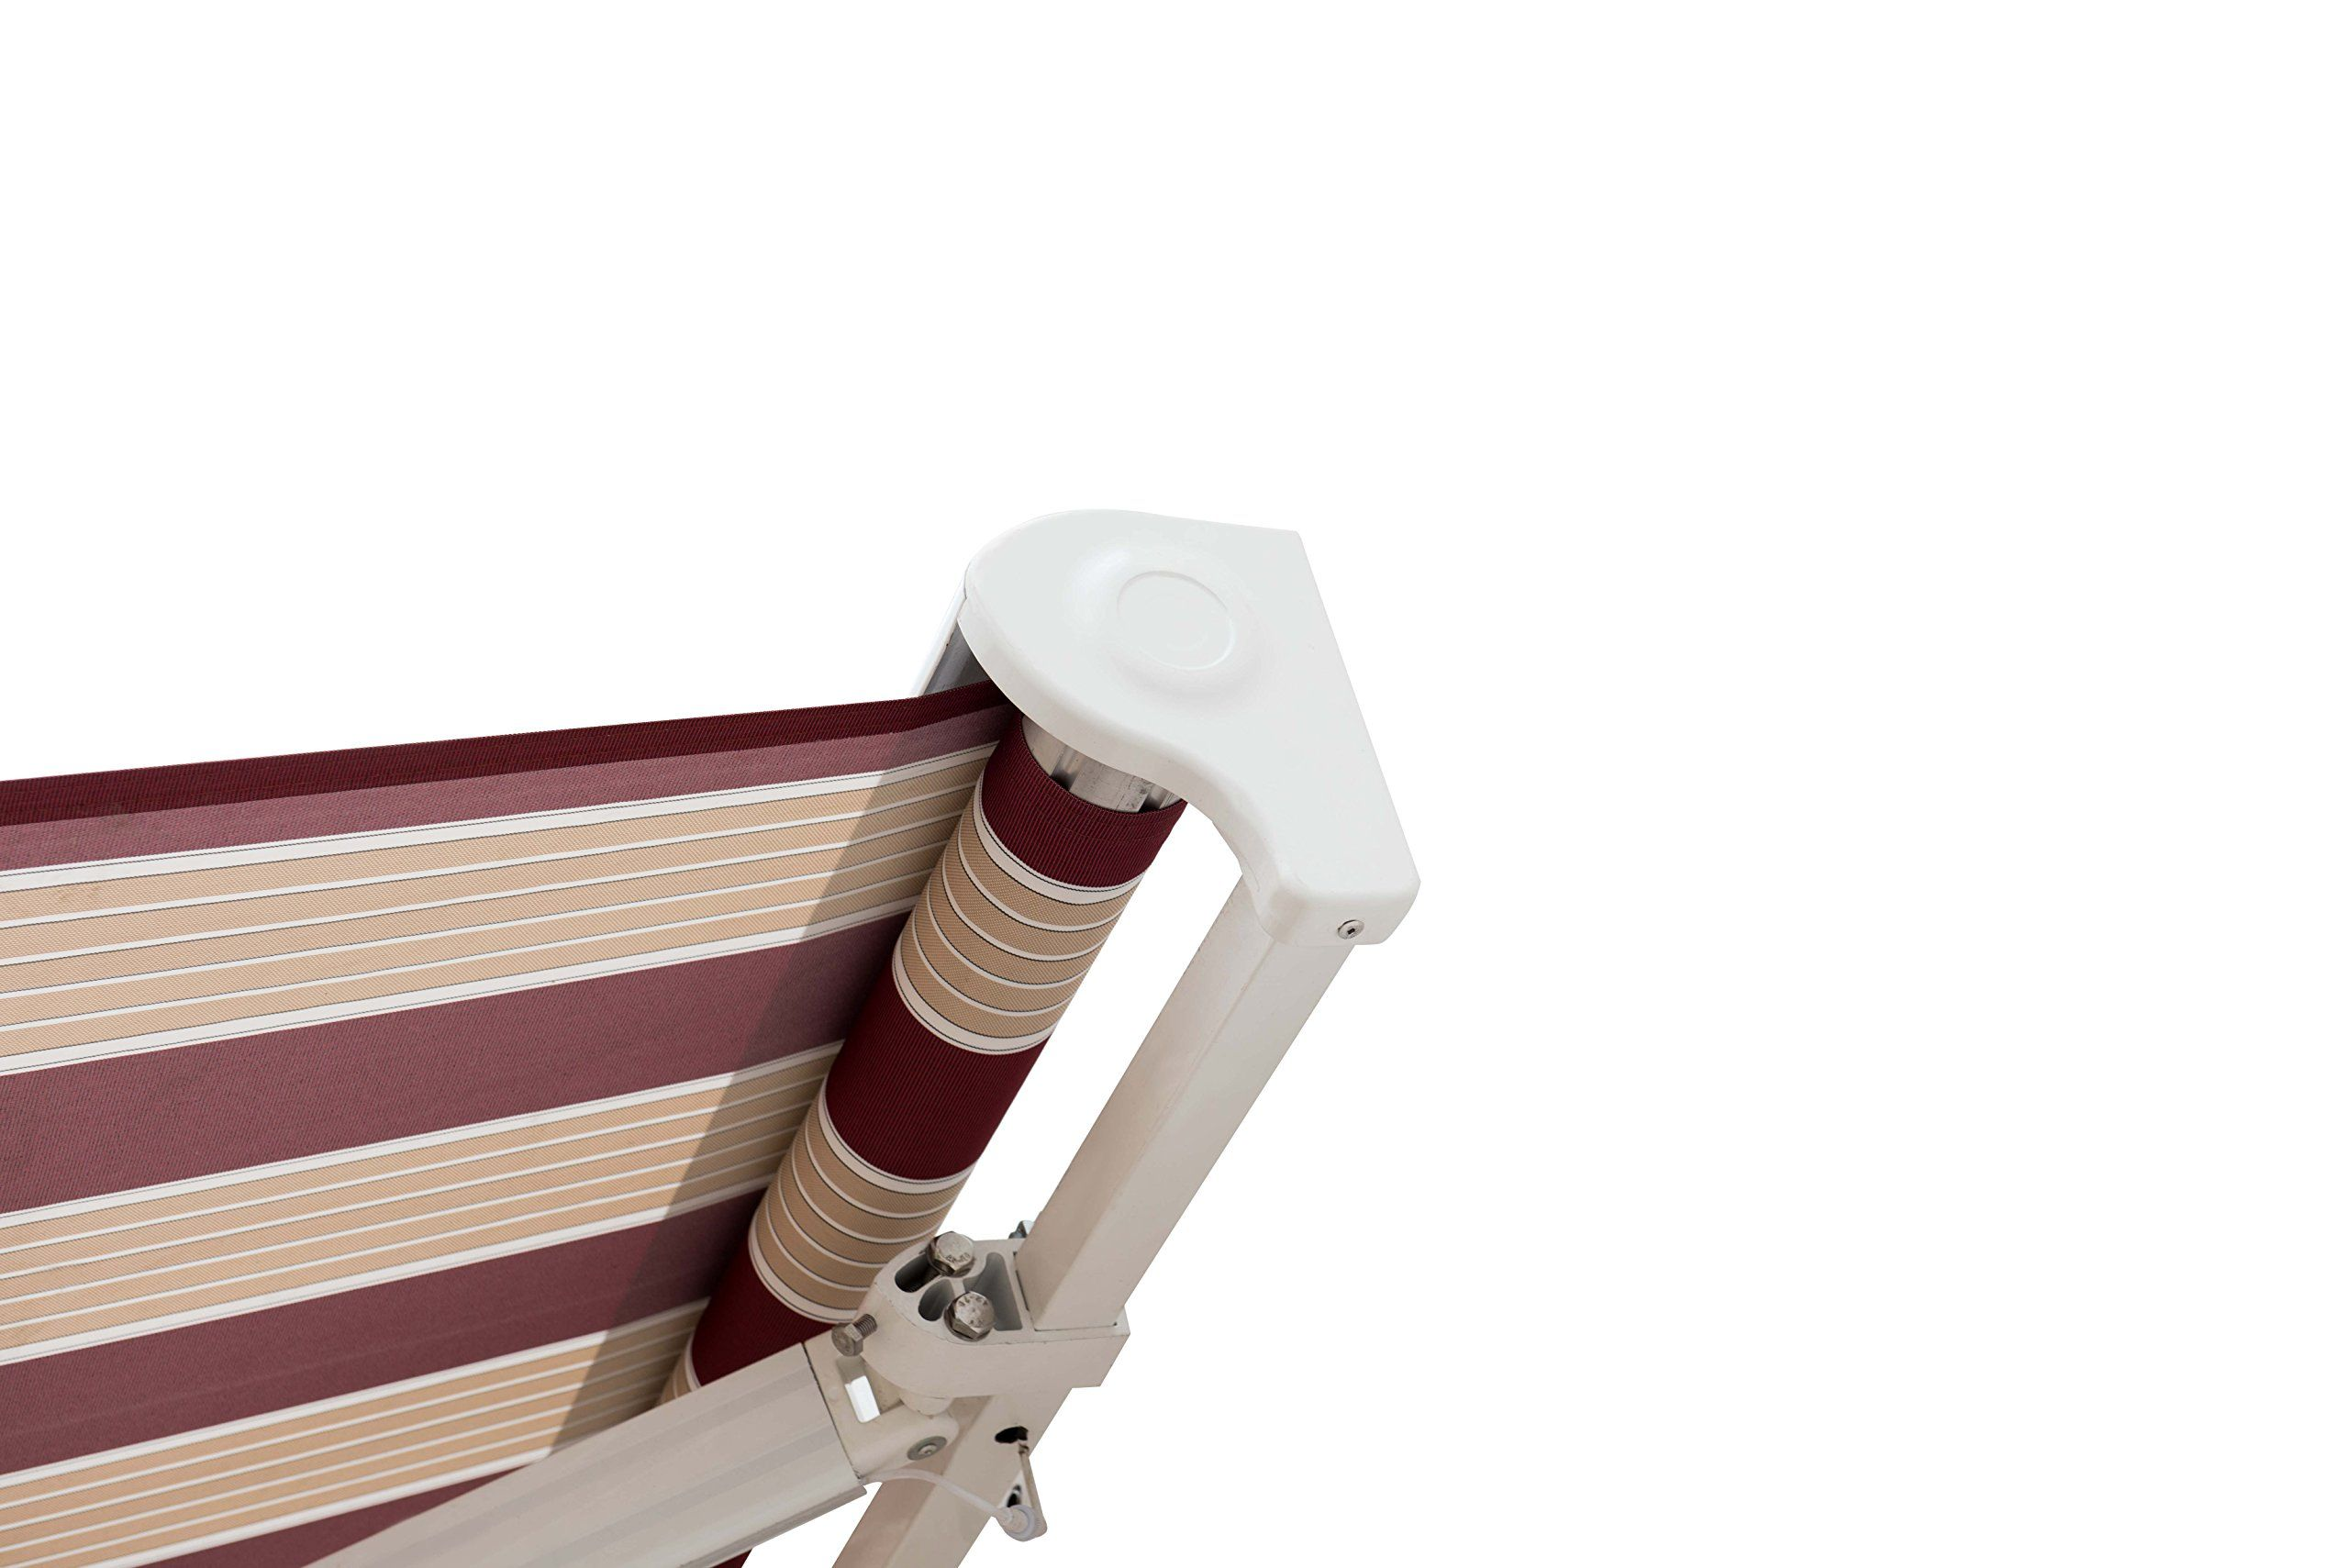 Sunjoy 14 X 10 Marquise Halfcassette Motorized Retractable Awning Red Red Stripe Read More At The Image Link Retractable Awning Patio Awning Red Stripe